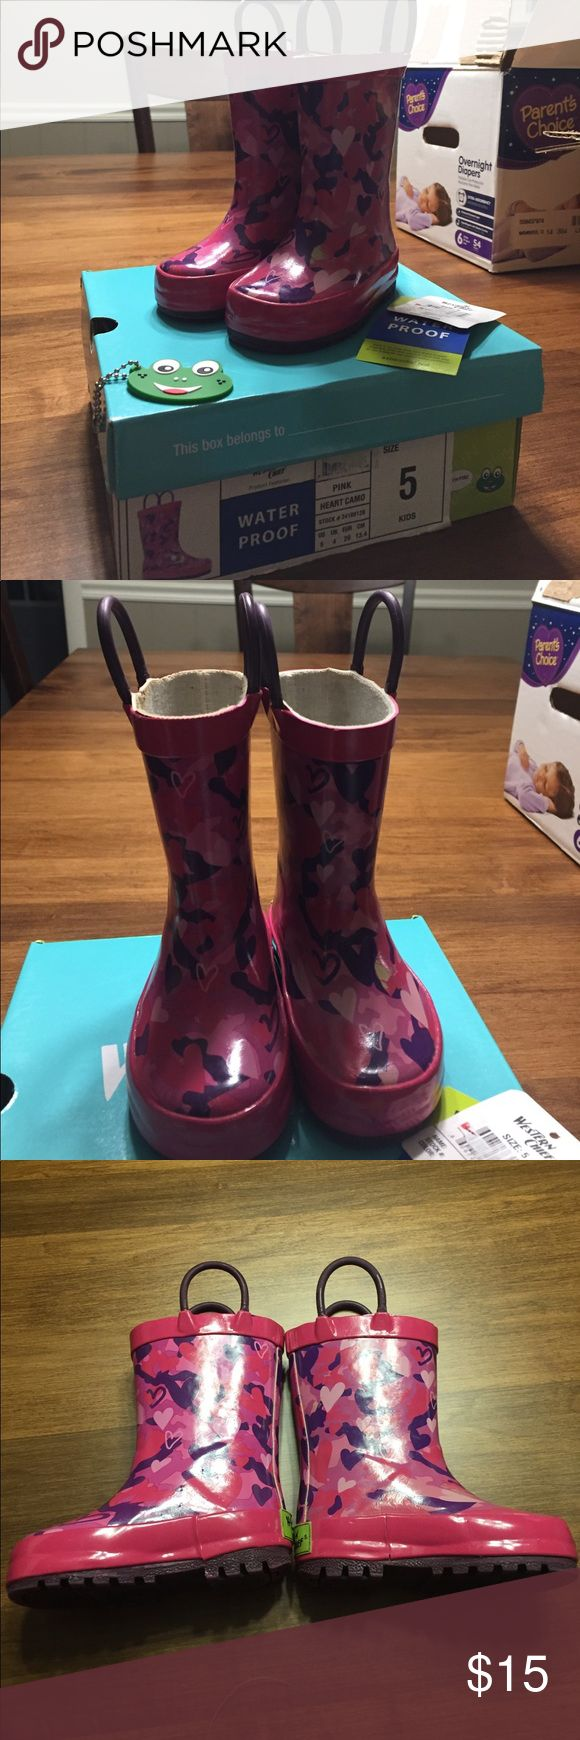 Like new Western Chief rain boots w/ box and tags Like new! Western Chief pink and Purple Heart camp little rain boots. Used for 2 months tops! Still have original box and tags. Small irregularity on the print (pictured), they came that way. Ordered online from Target. Western Chief Shoes Rain & Snow Boots